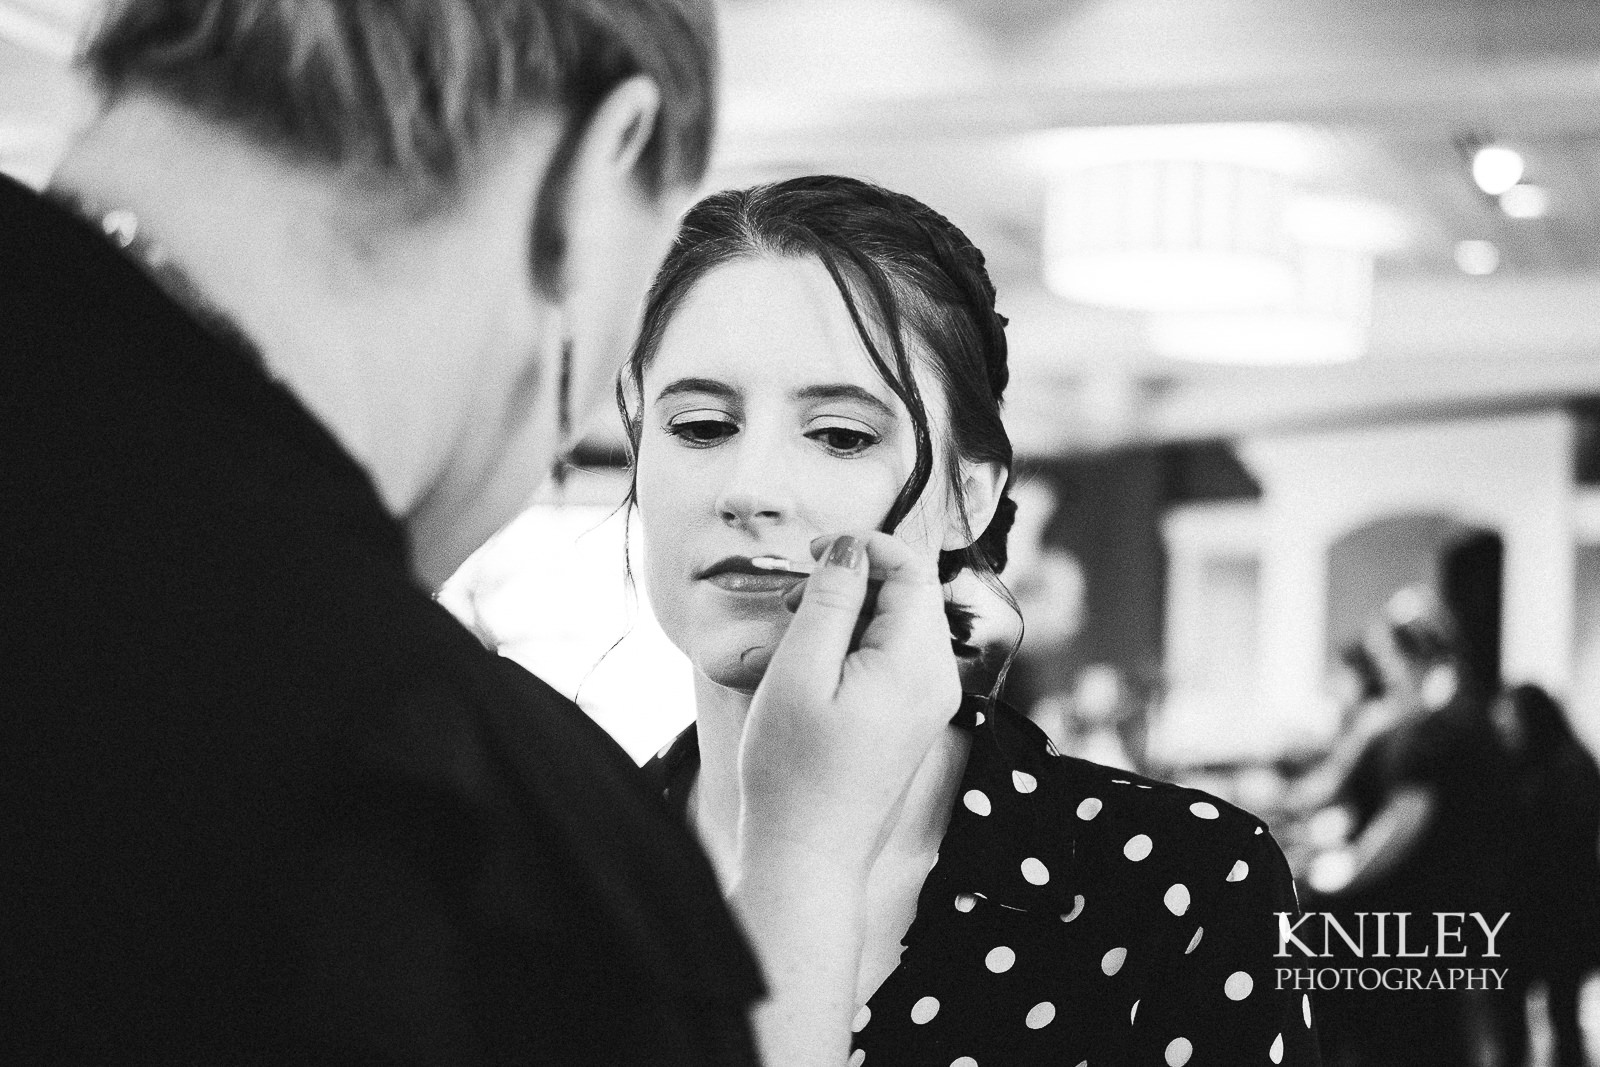 011 - Rochester NY wedding pictures - Del Monte Spa getting ready - XT2B6476.jpg